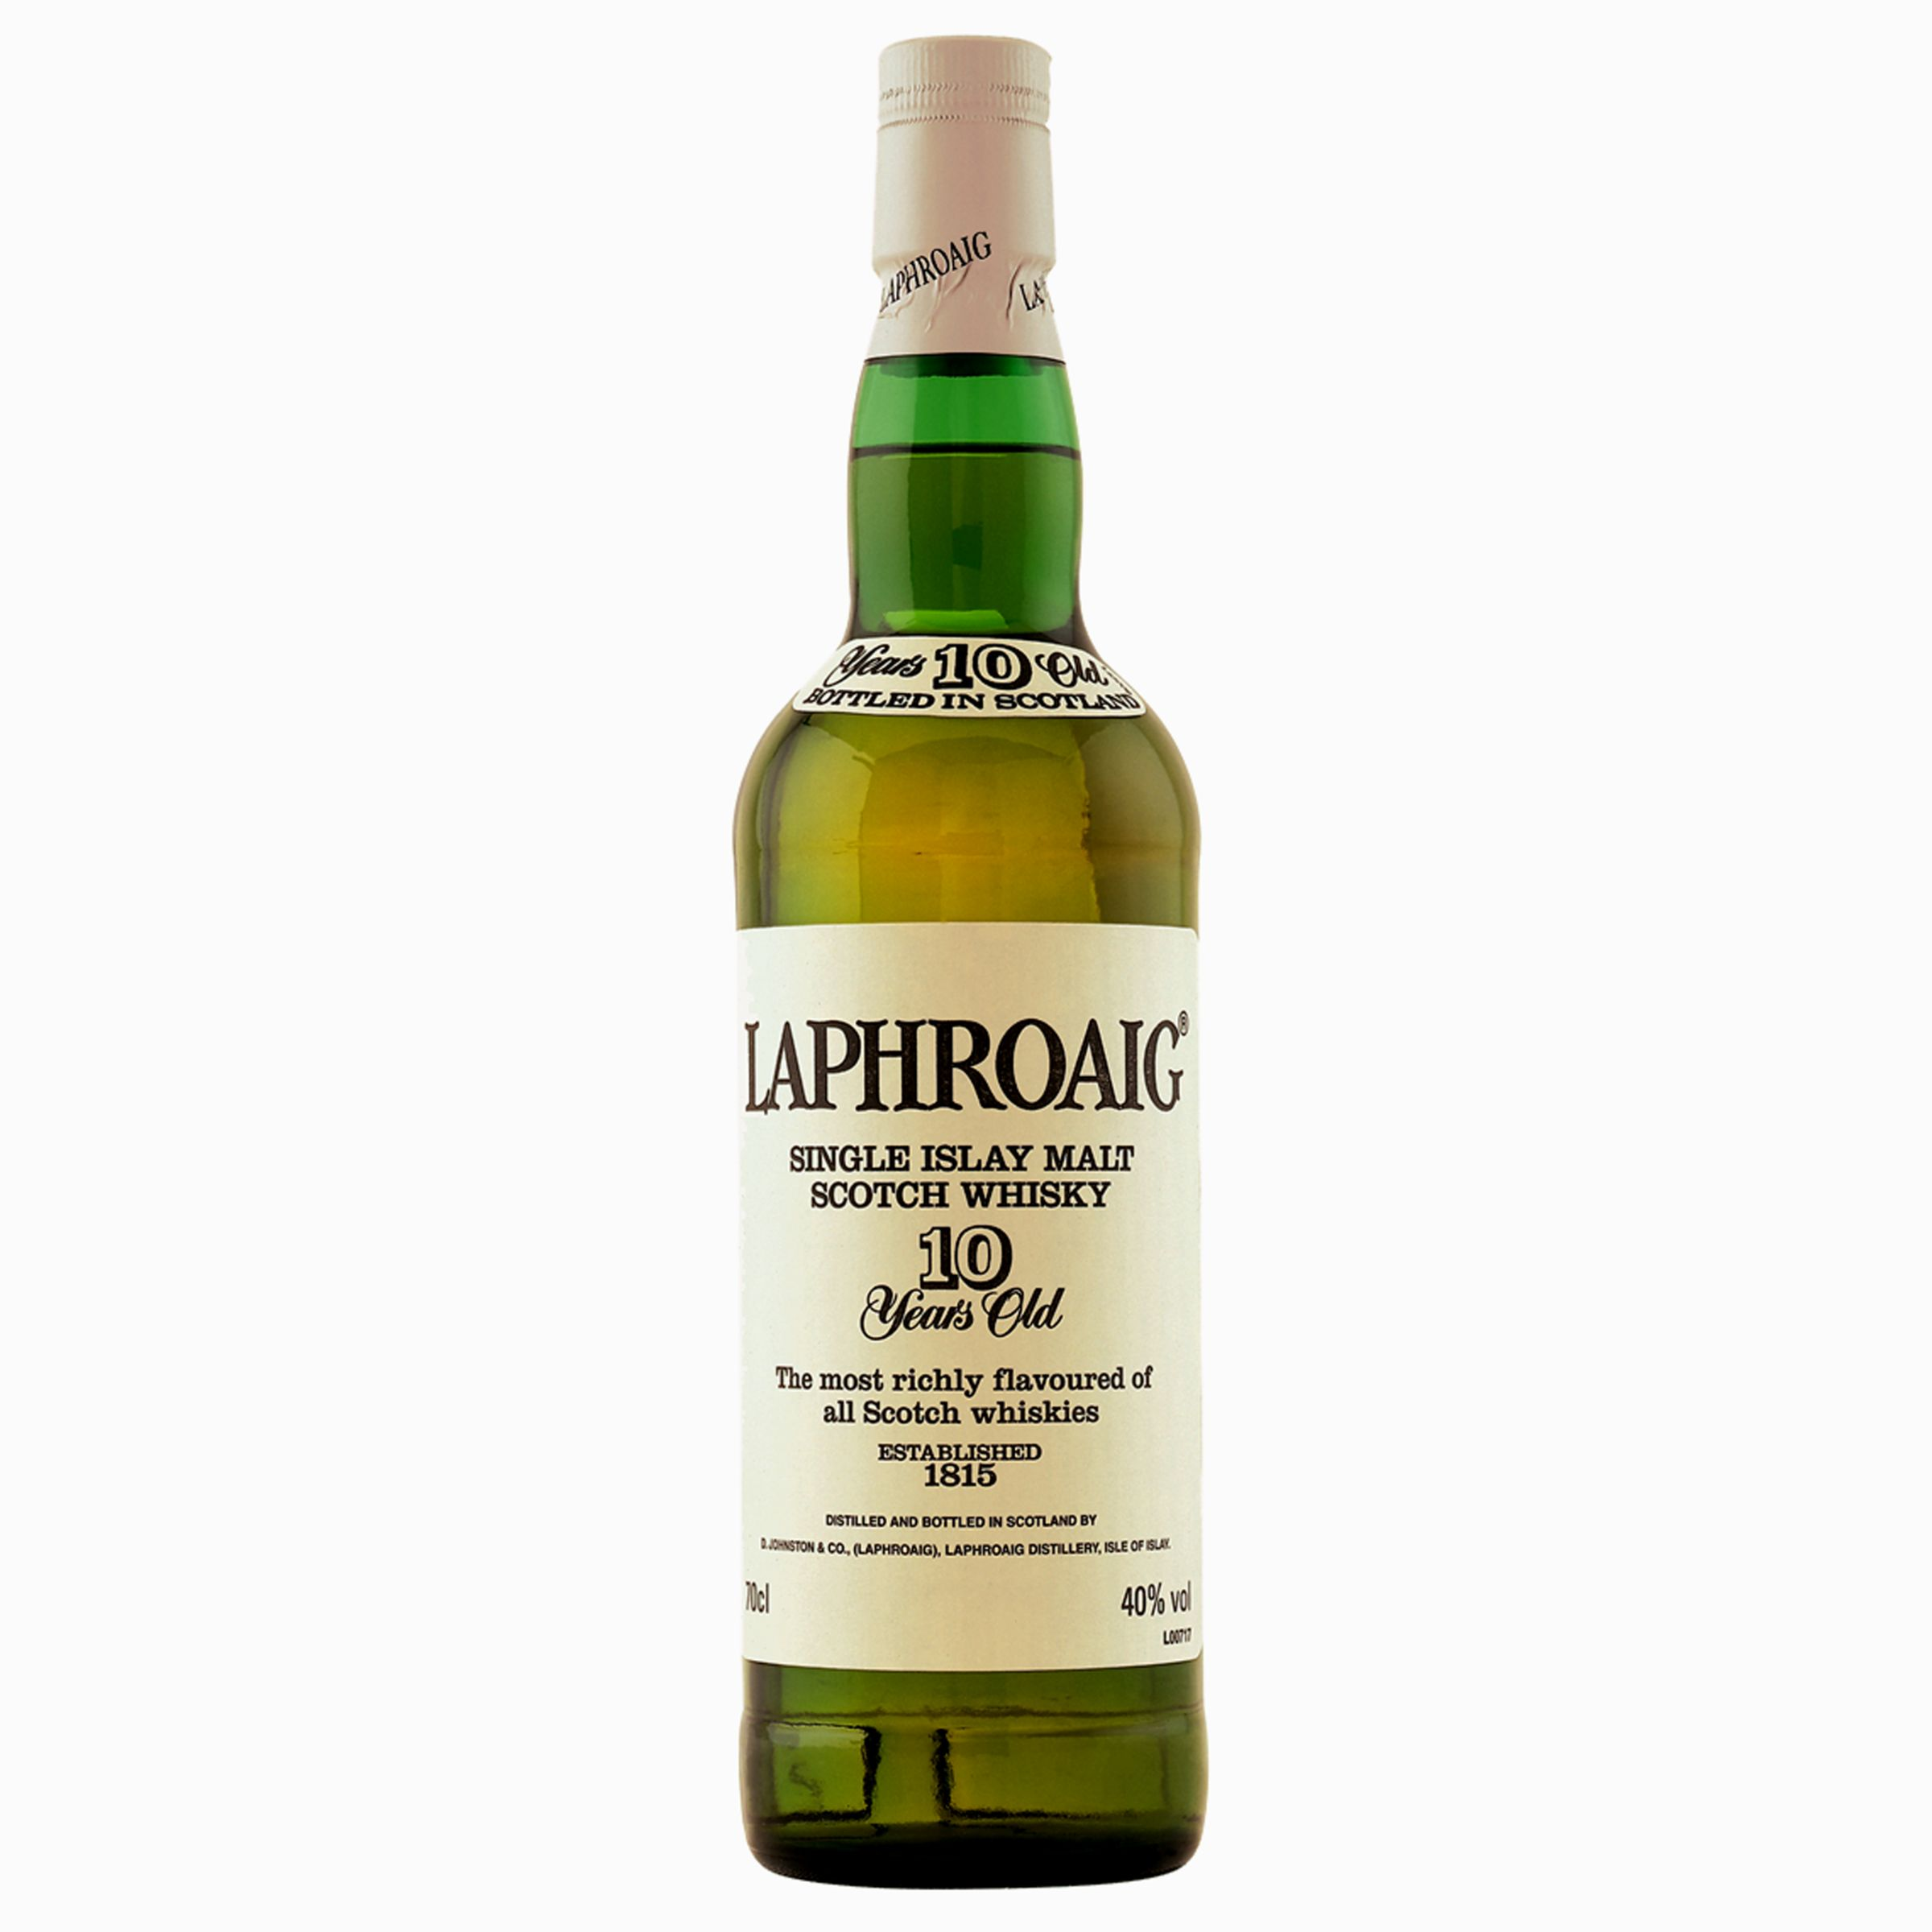 Laphroaig 10 Year Old Islay Malt Whisky